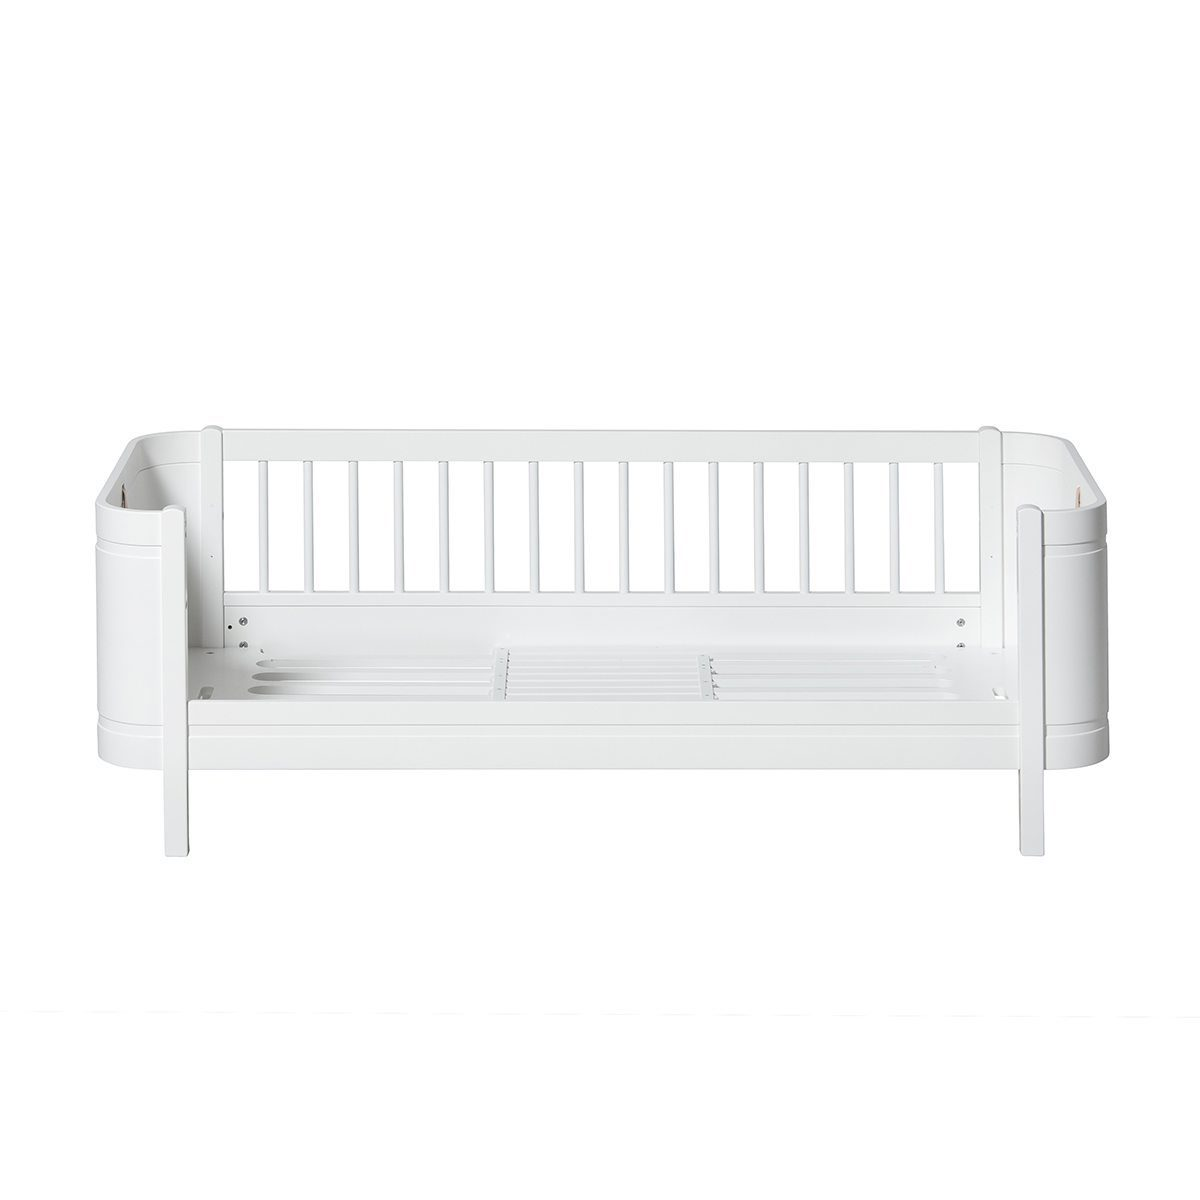 Oliver Furniture Ledikant Wood Mini+ white